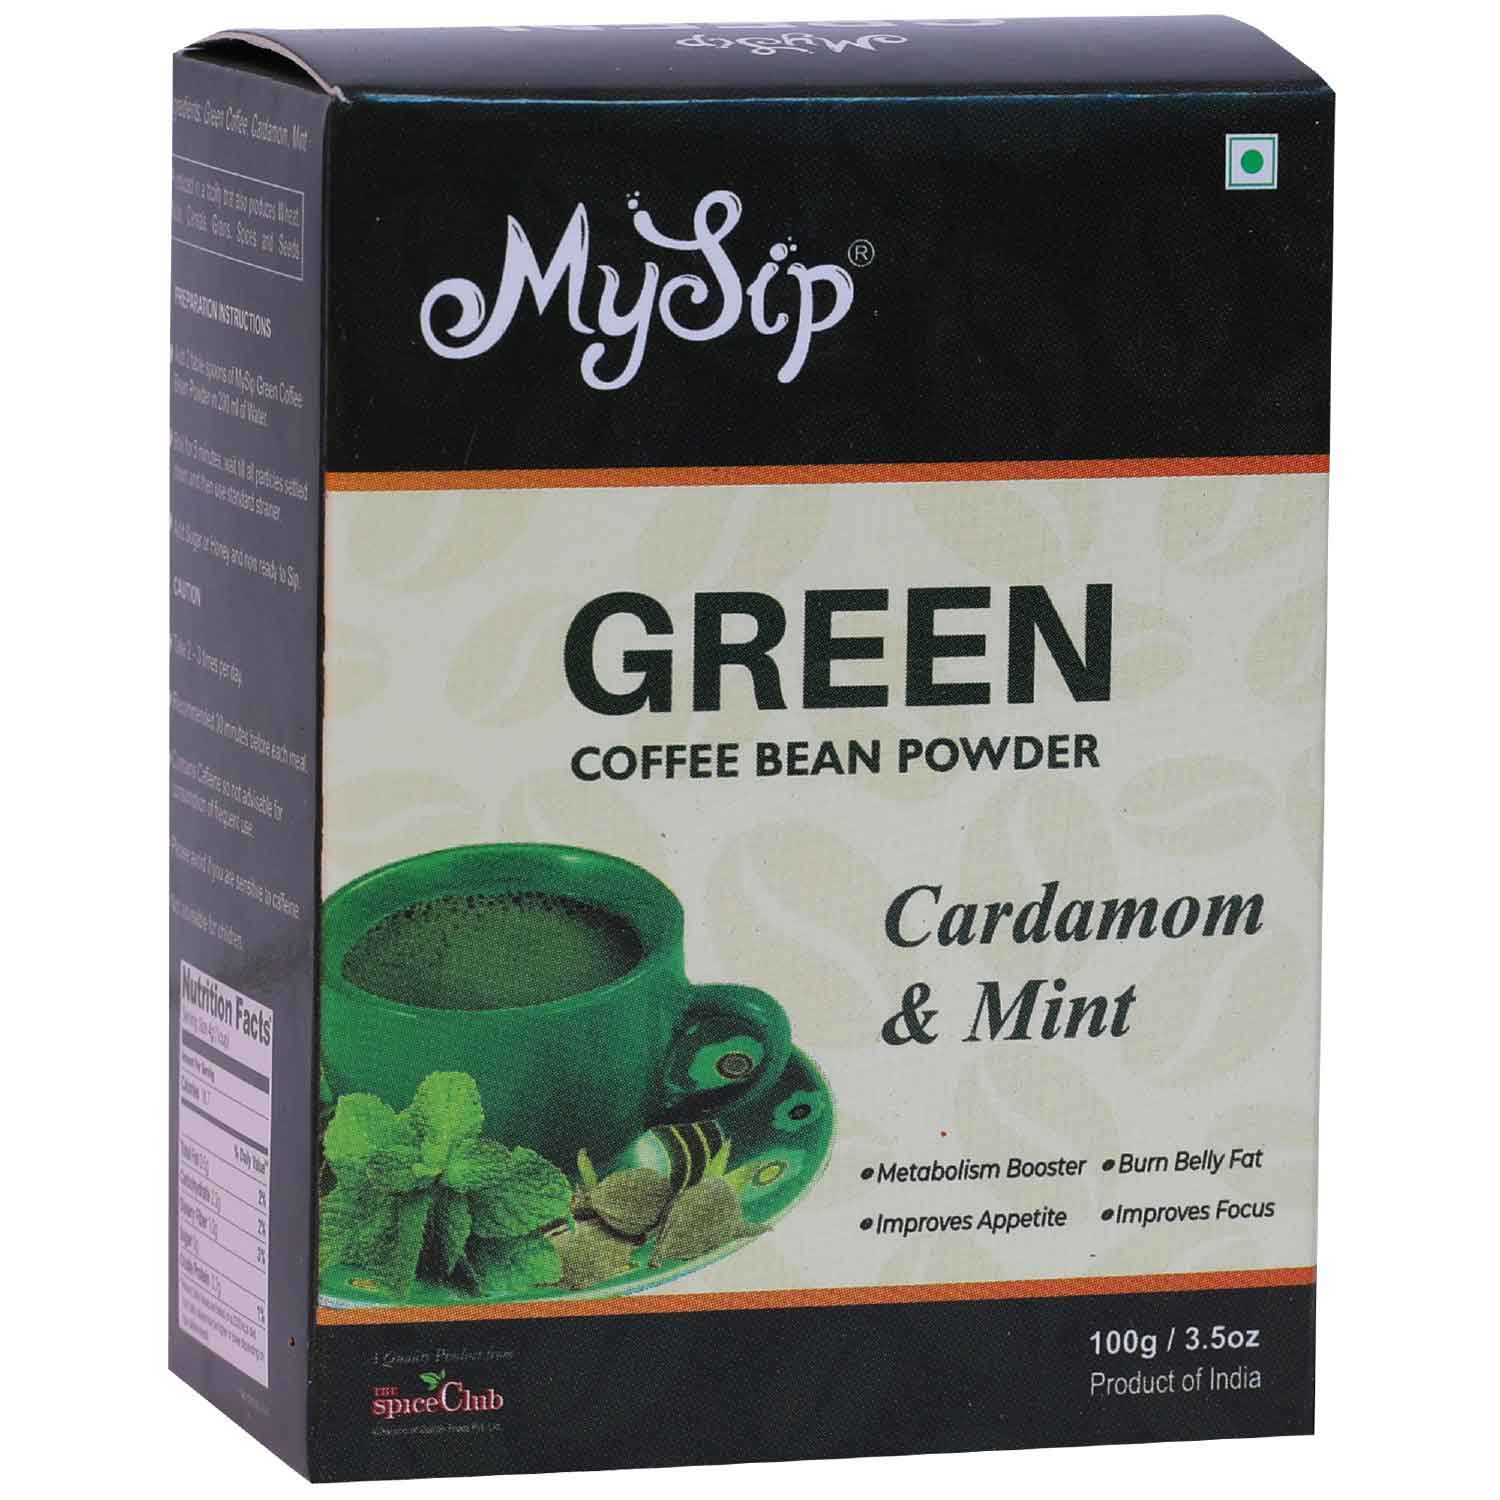 Green Coffee Bean Powder Cardamom & Mint – 100g